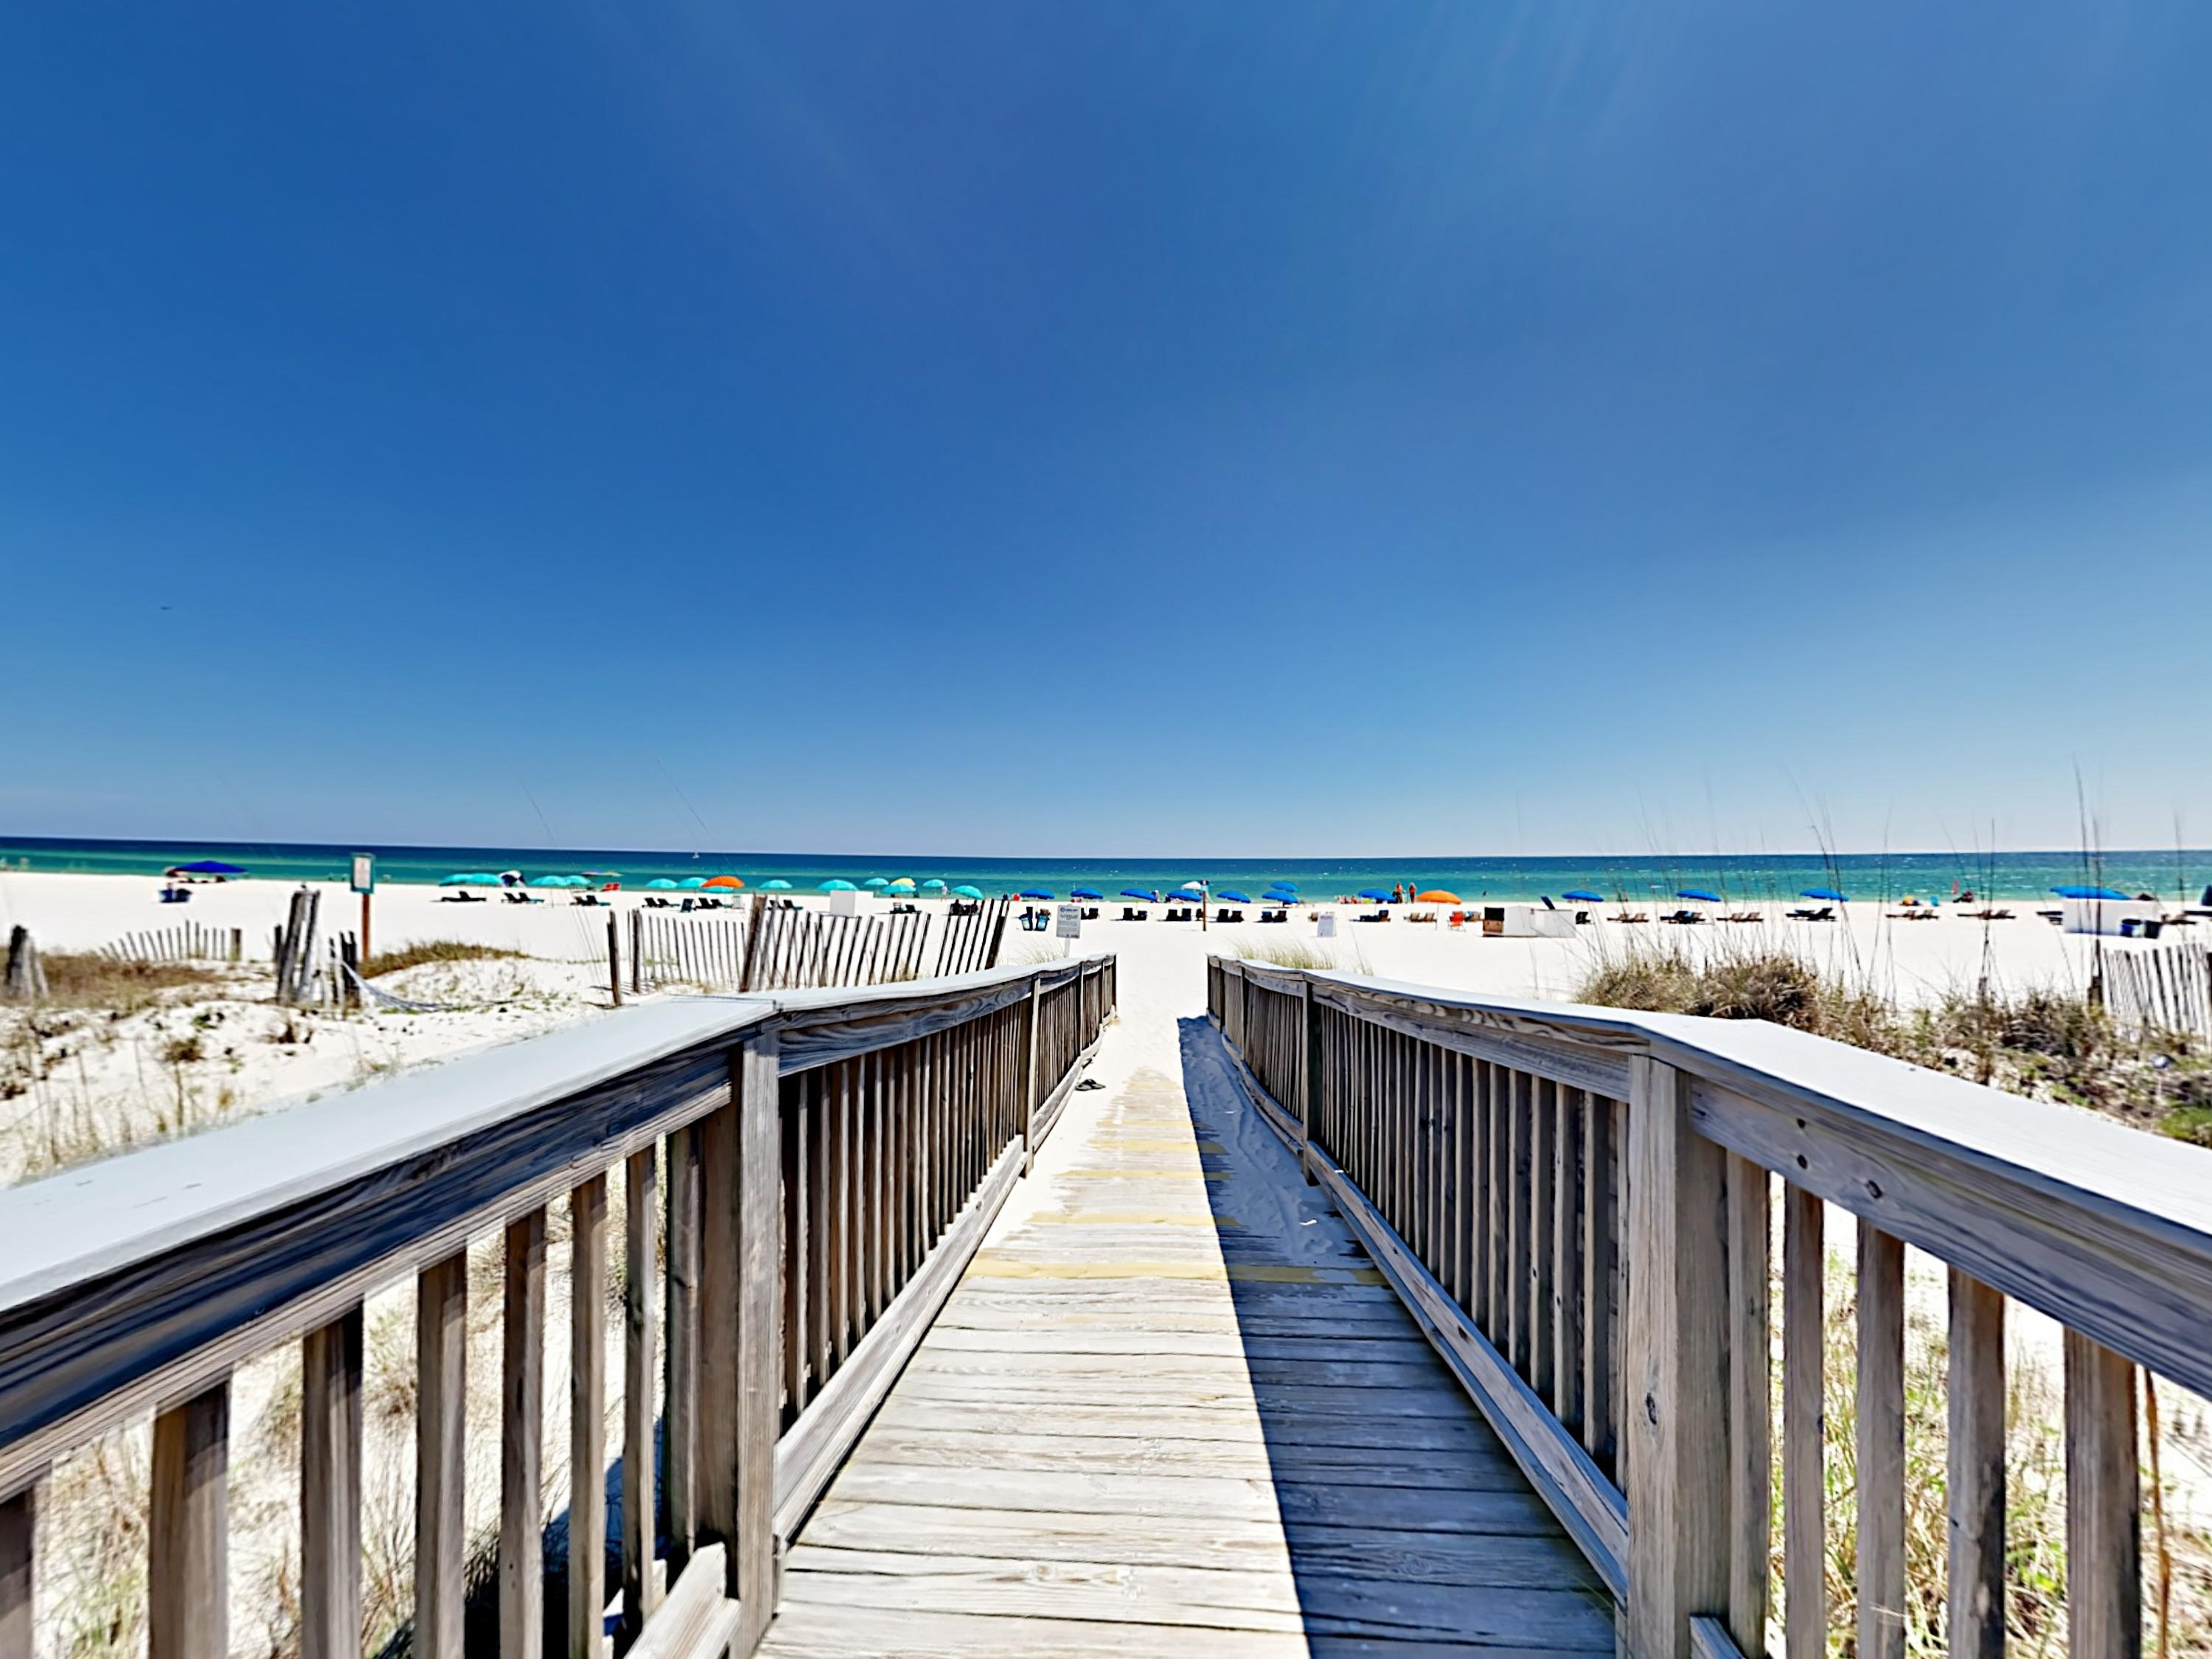 Follow the boardwalk to the beach and spend sunny days splashing in the Gulf waters.